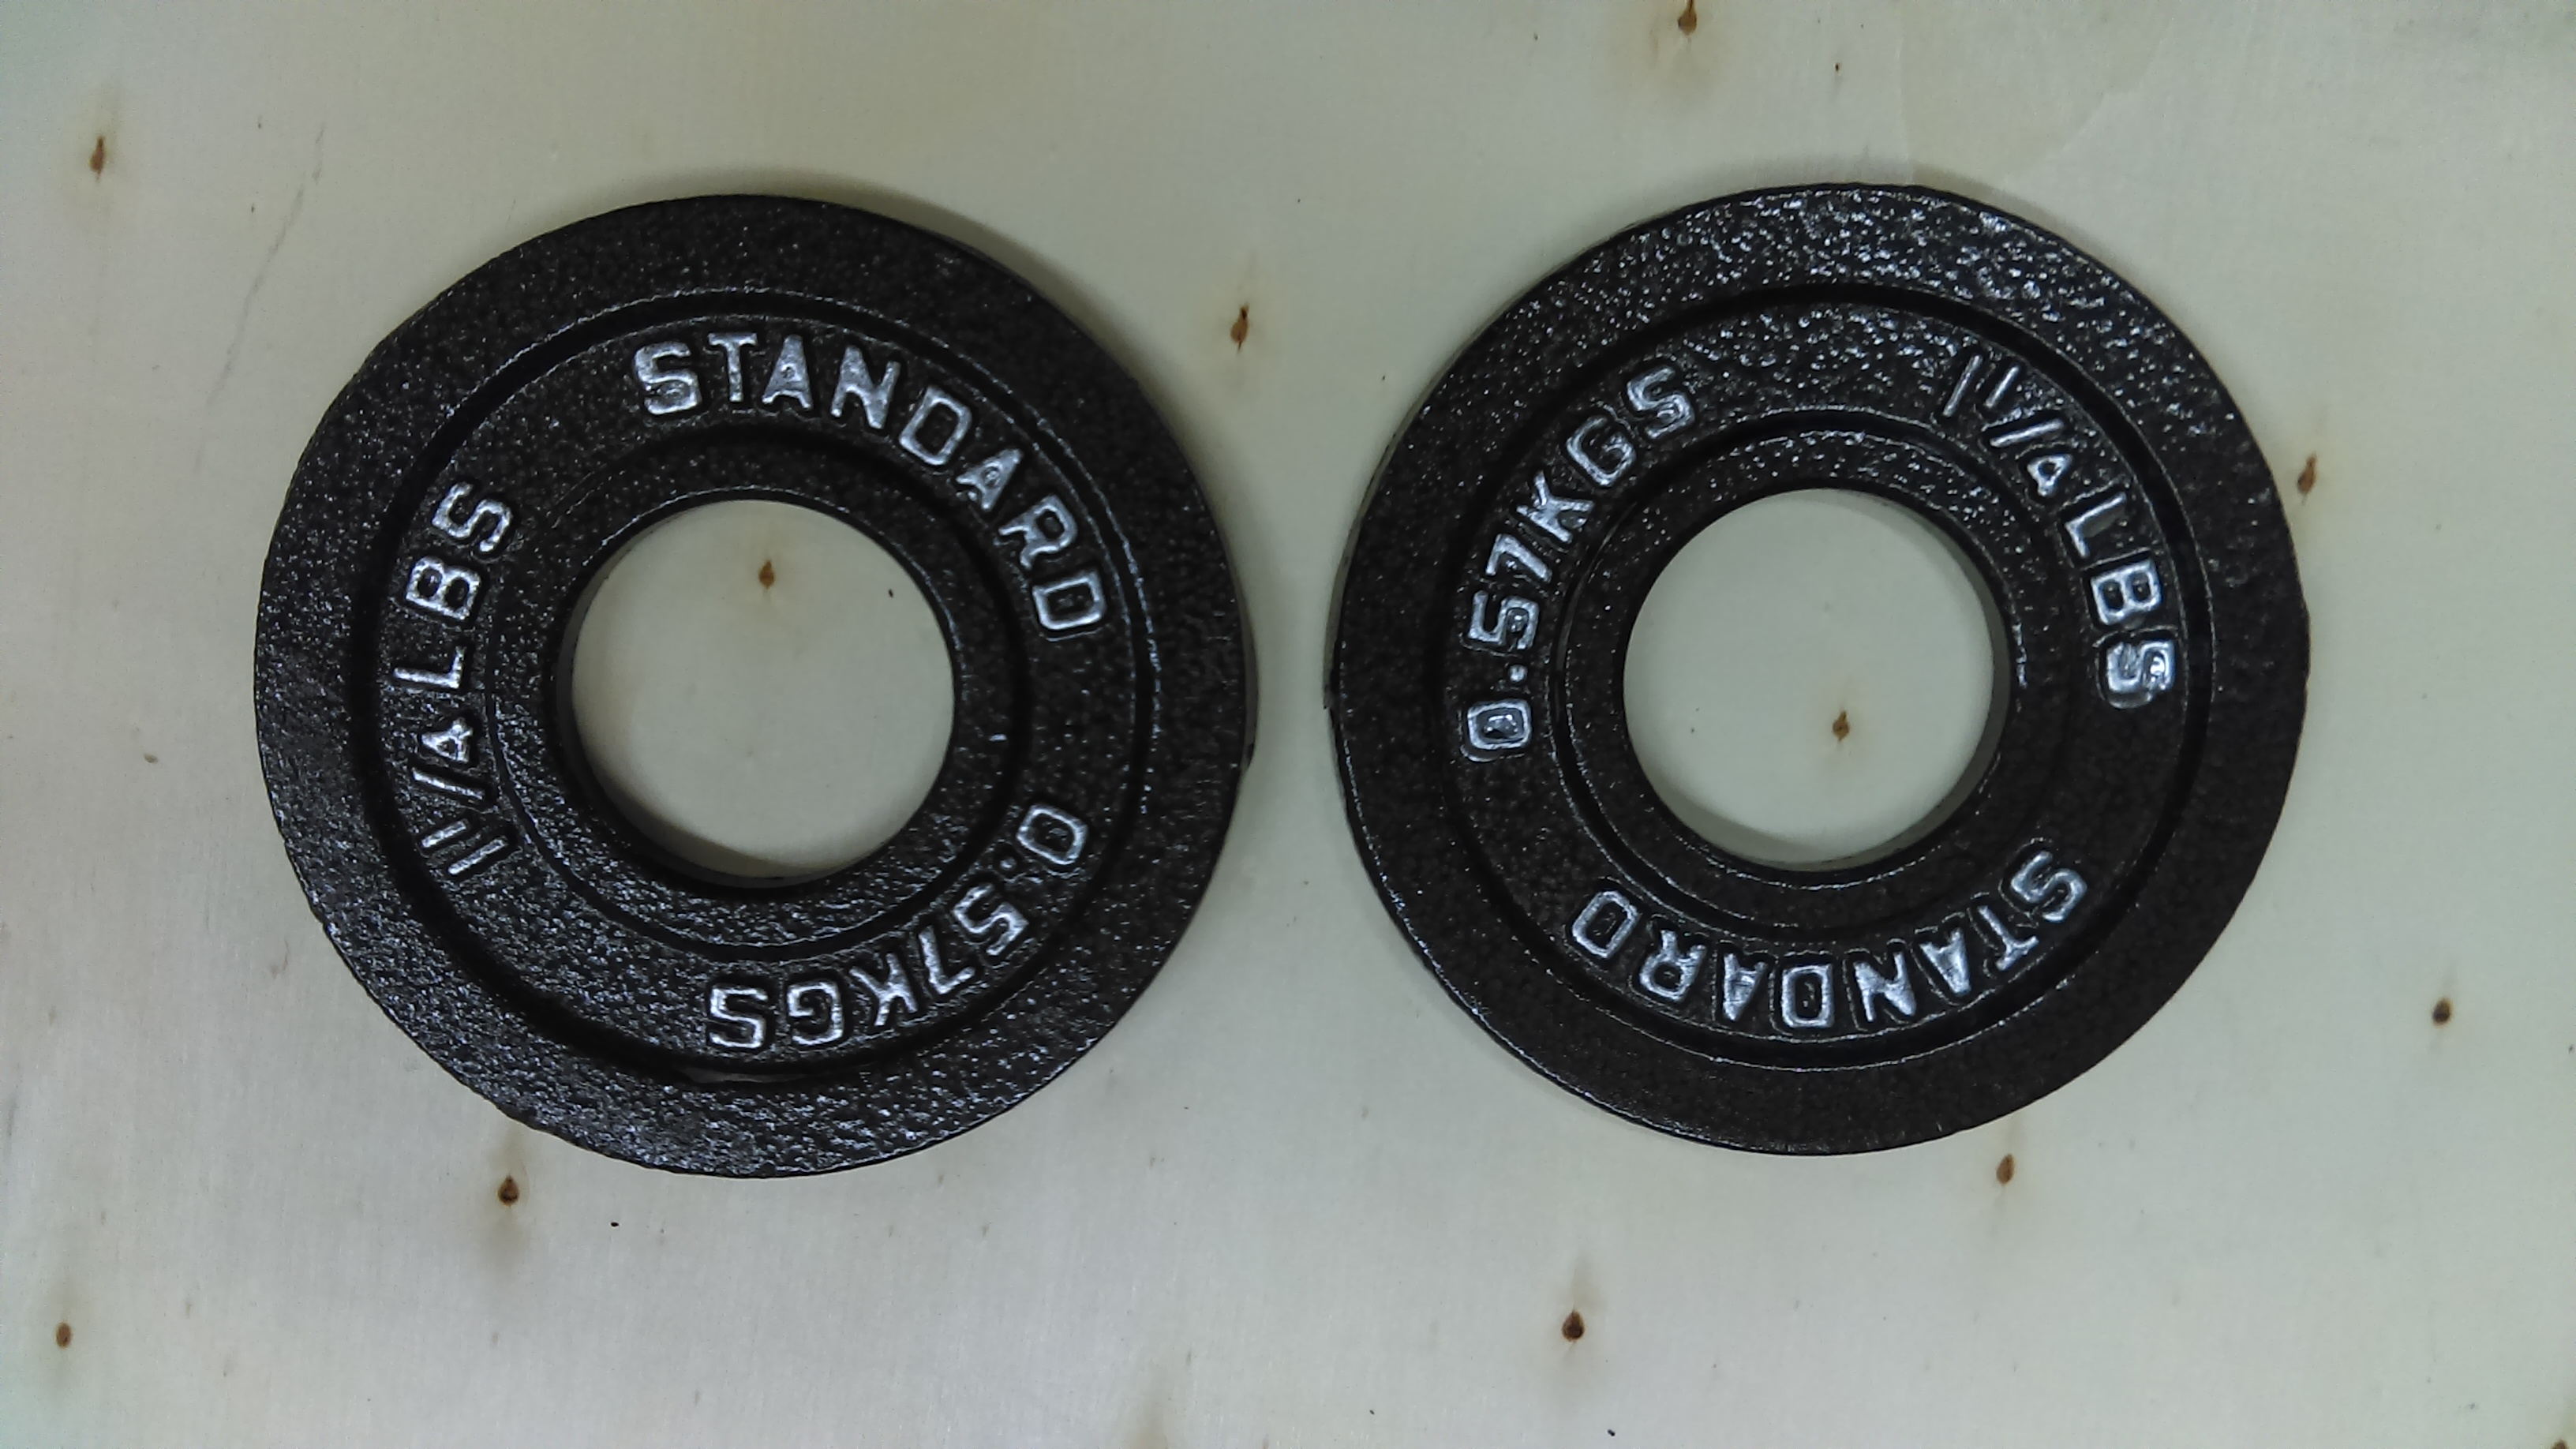 & Standard 1.25 pound Olympic weight plate set